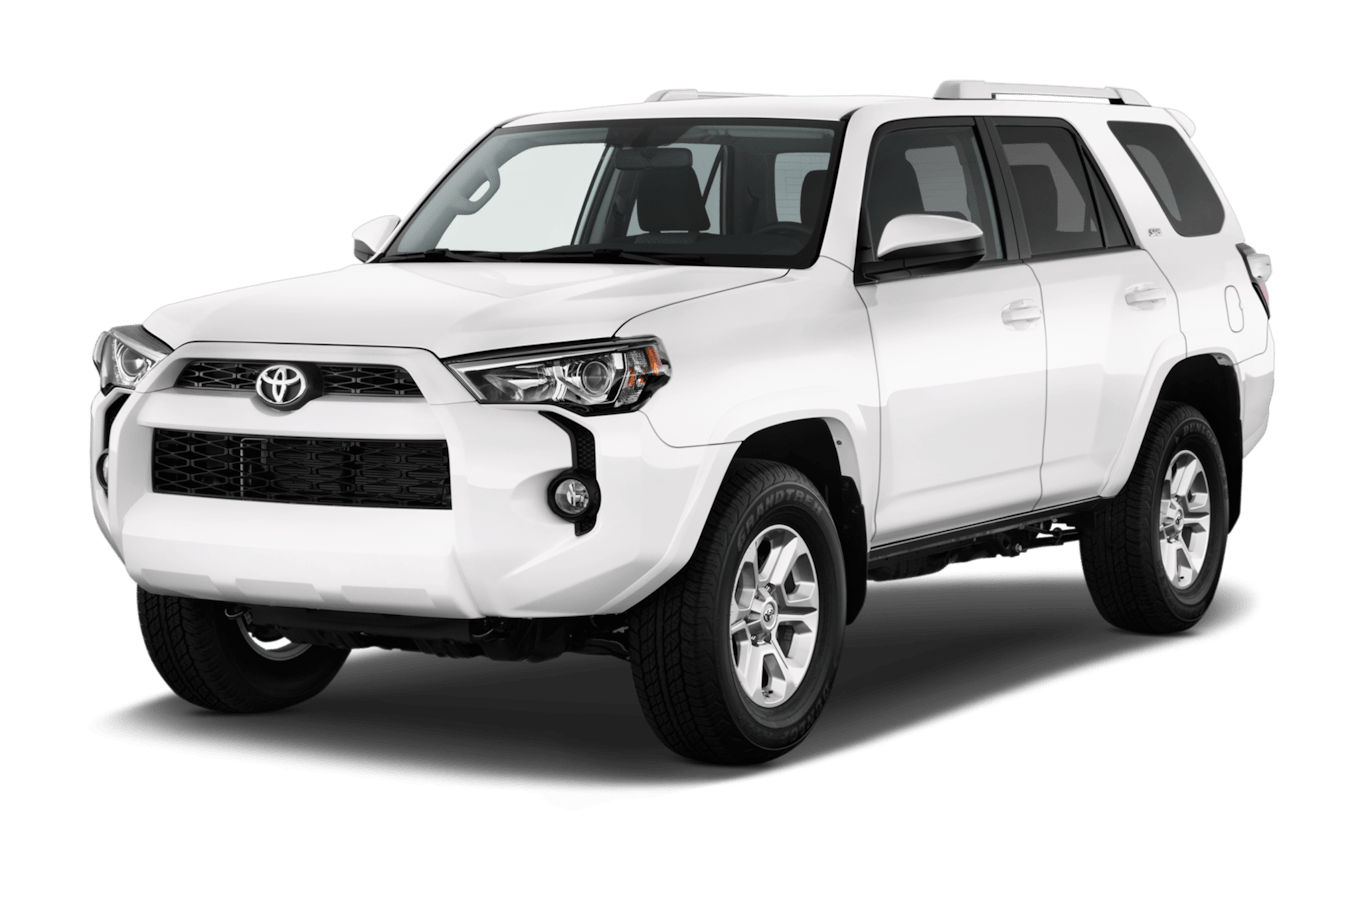 1999 toyota 4runner limited radio wiring diagram outdoor flood light fuse box location library